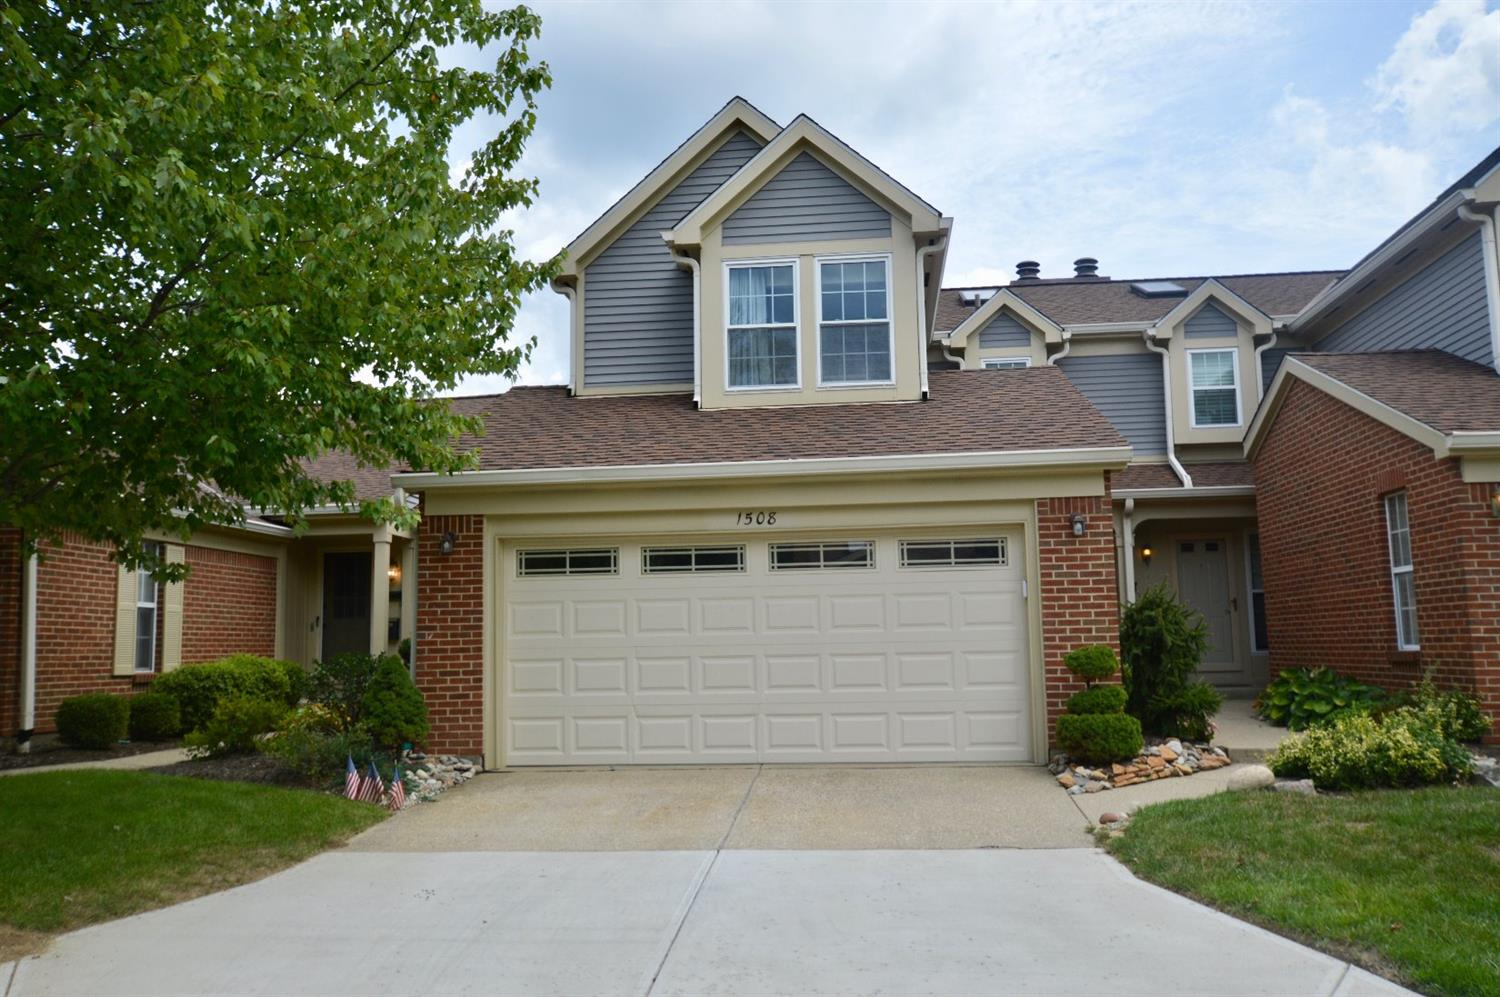 1508 Cohasset Dr 88 Anderson Twp OH